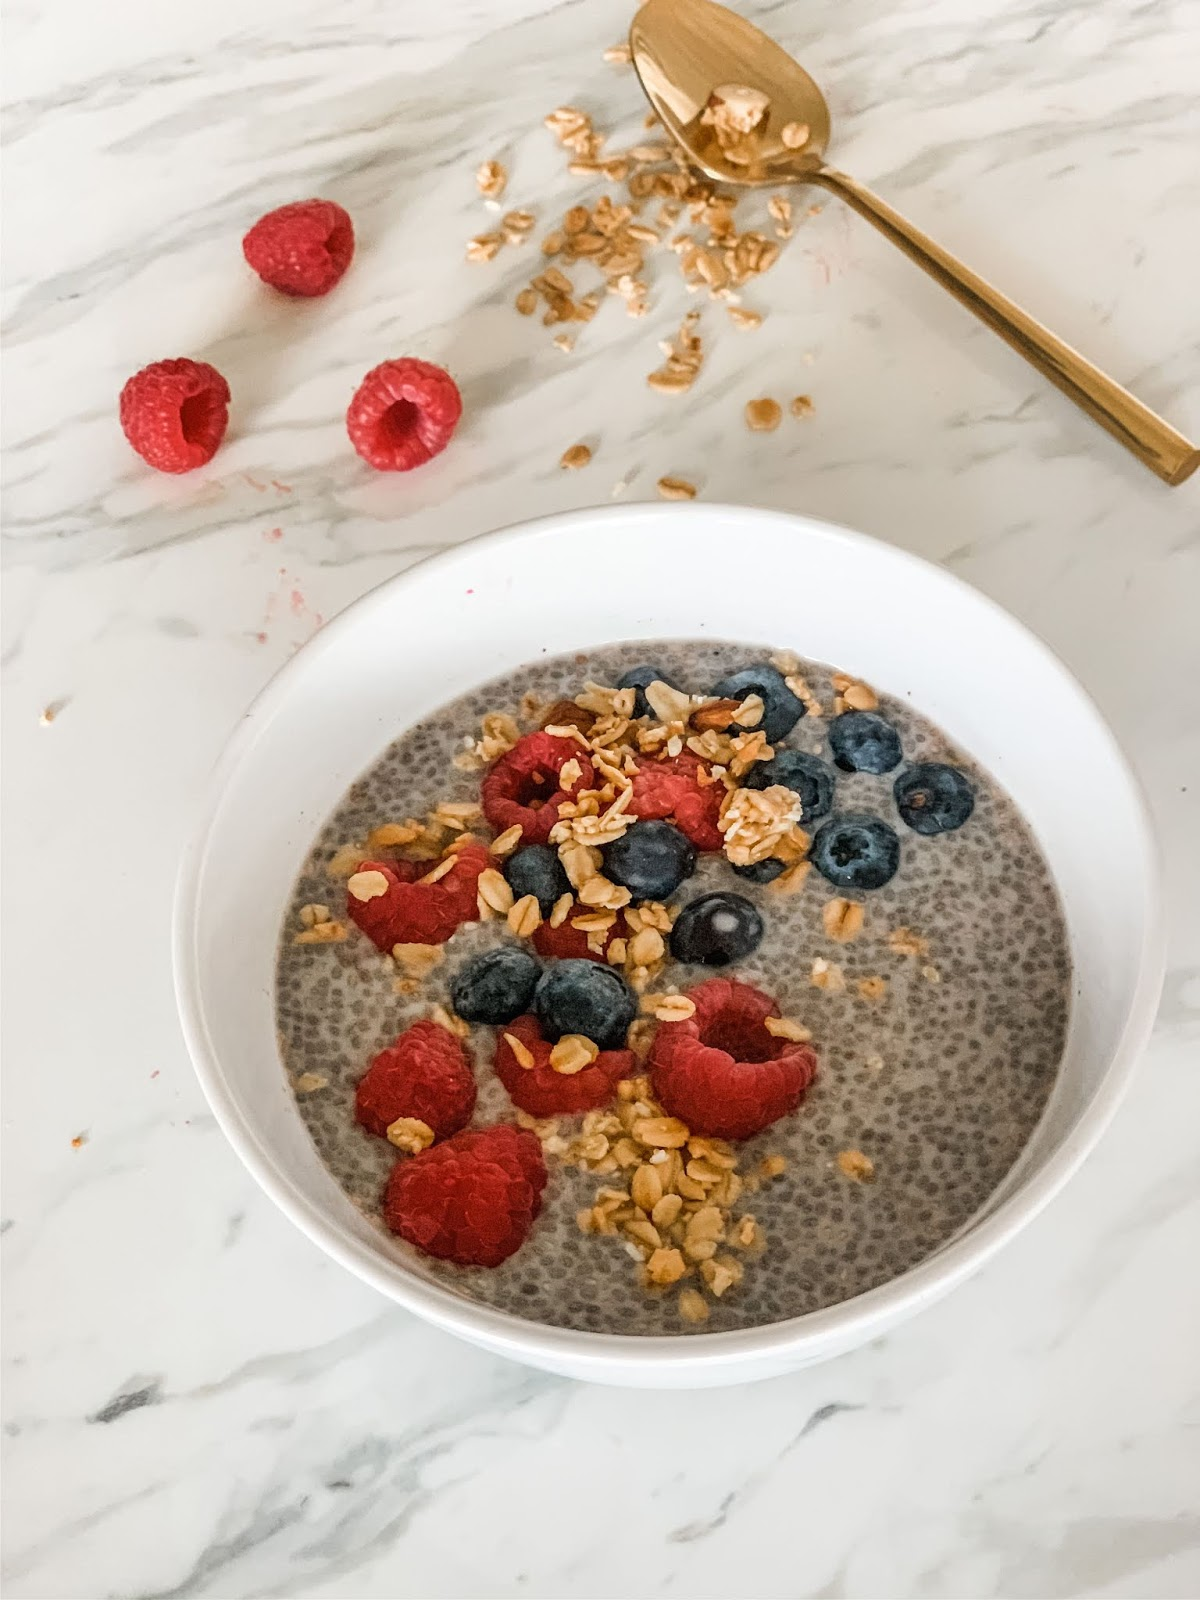 Chia seeds with raspberries, granola, blueberries